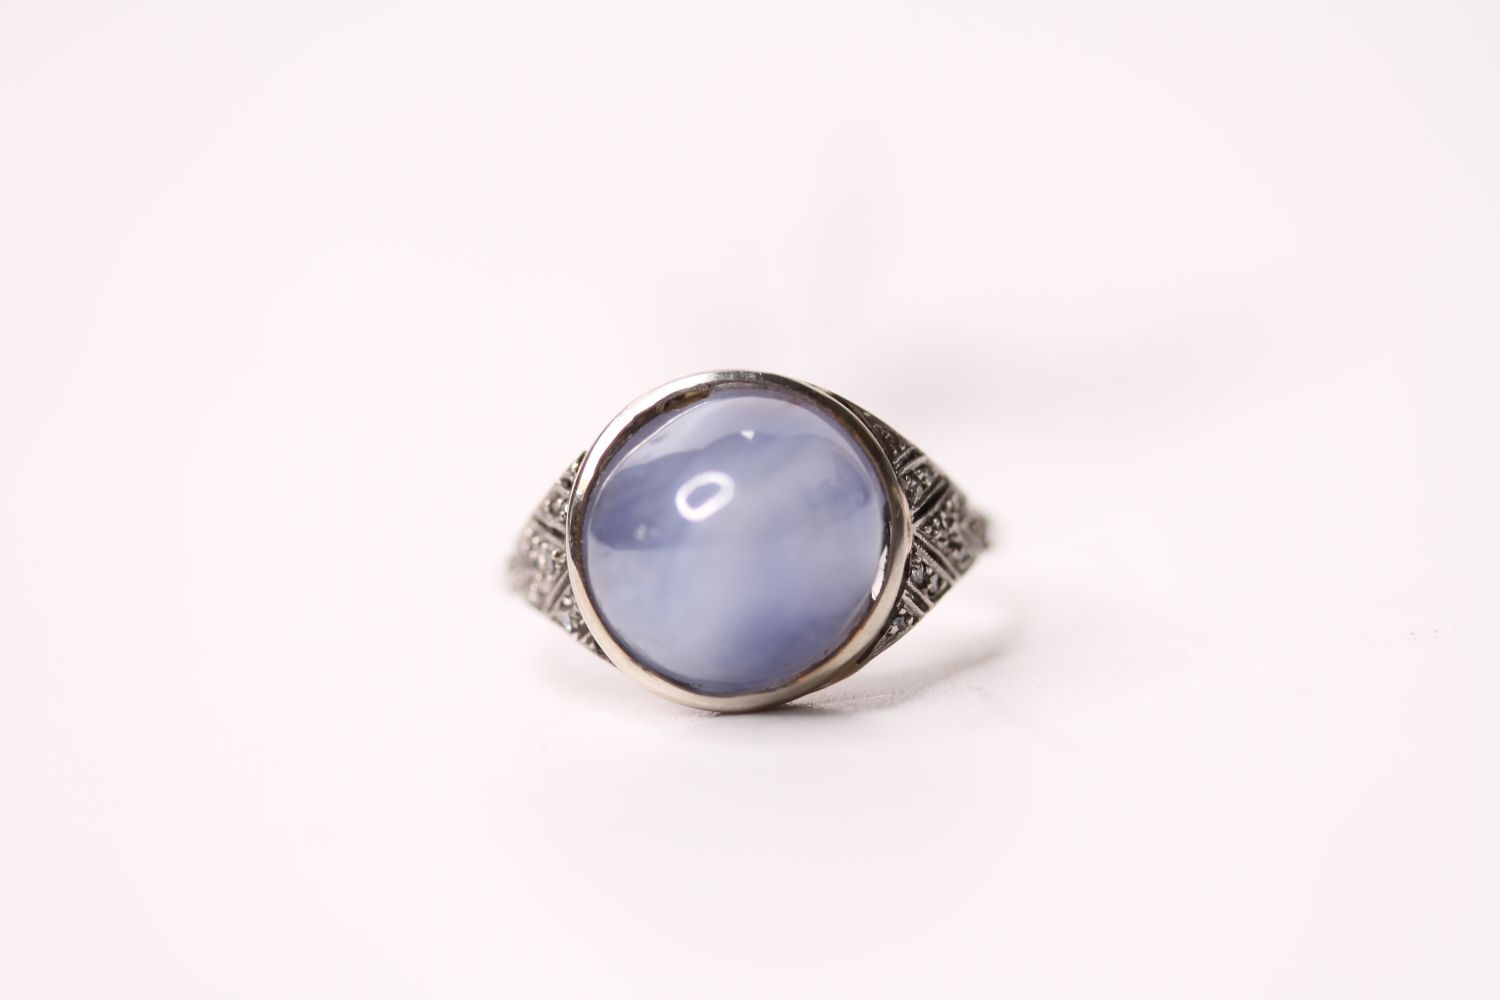 Cabochon Star Sapphire Ring, set with a cabochon cut star sapphire, art deco style, size O.